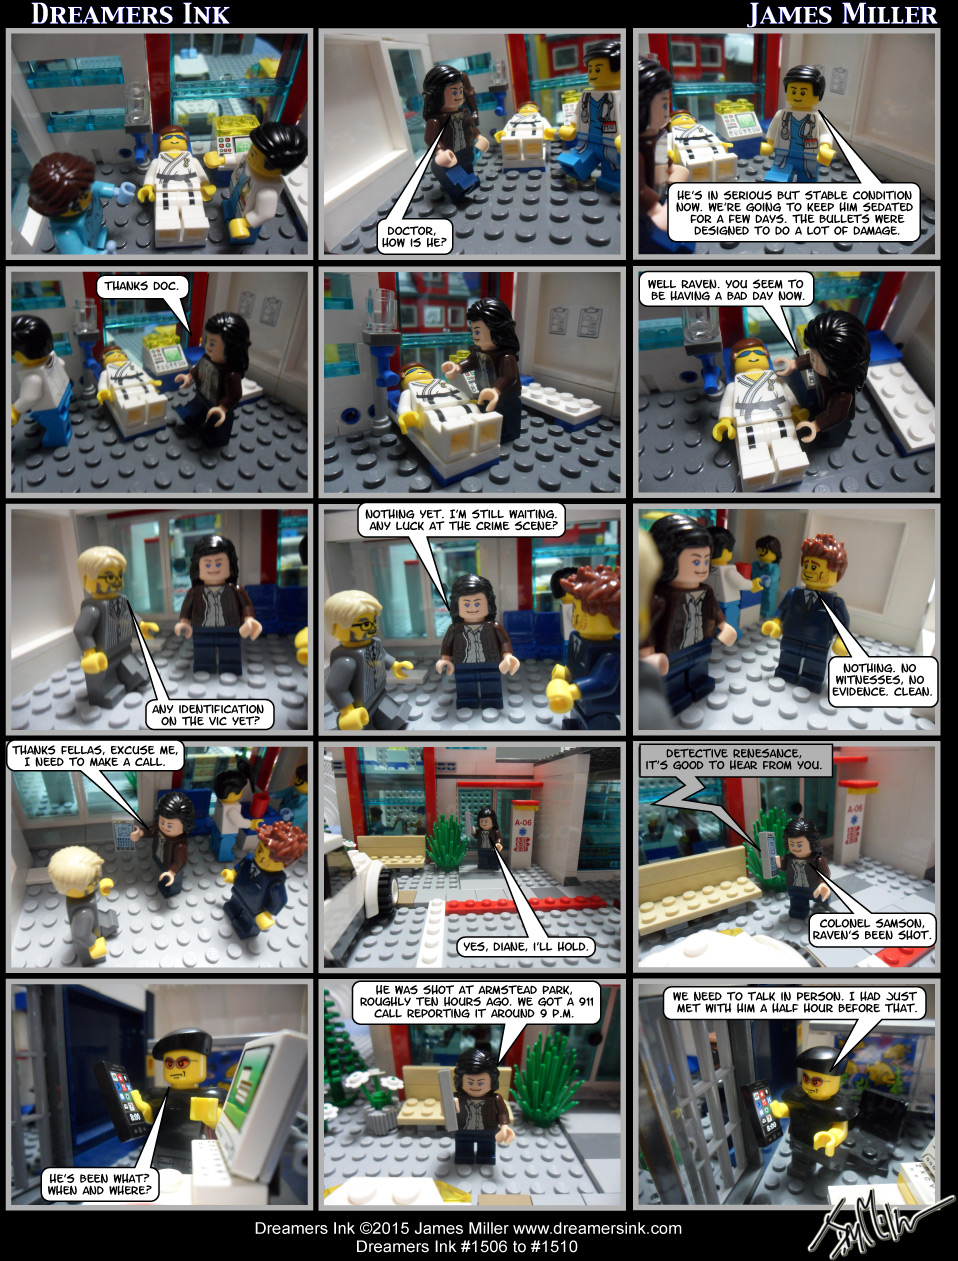 Strips #1506 To #1510